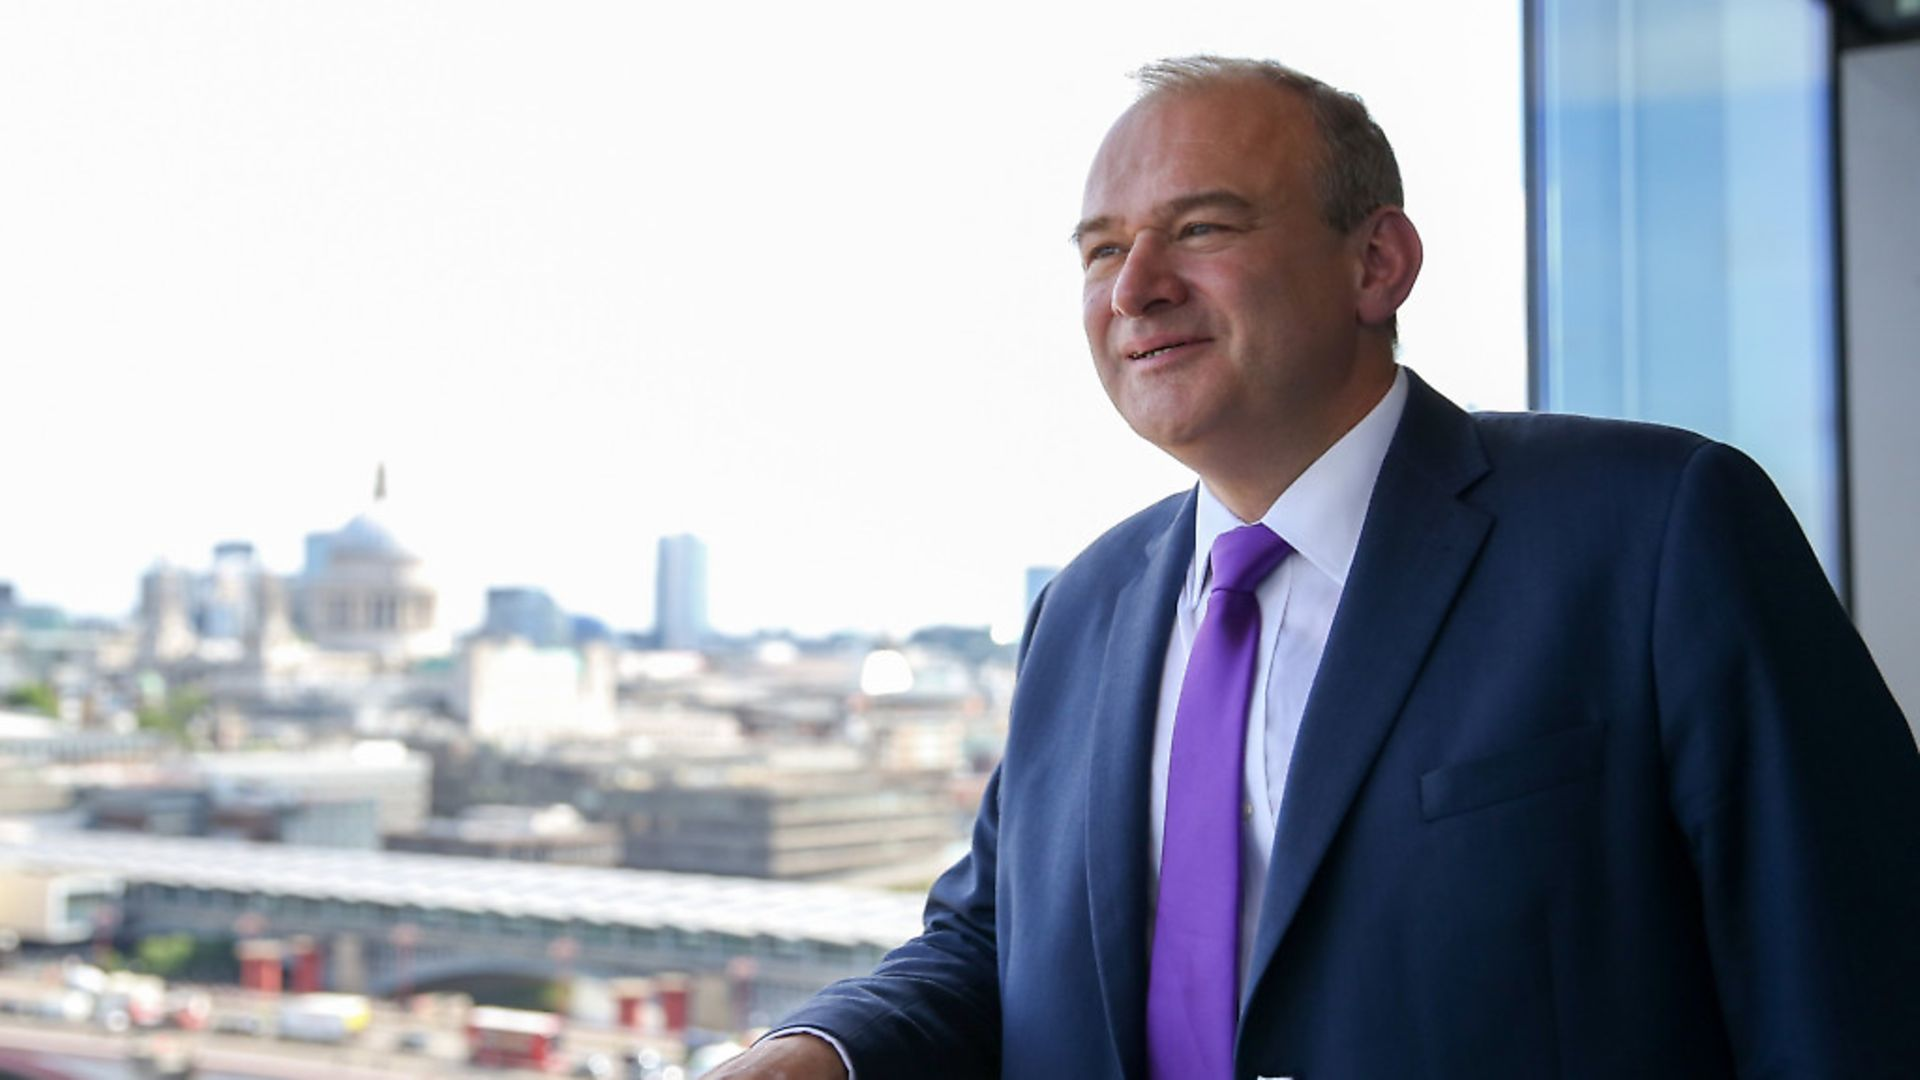 Liberal Democrat leadership candidate Sir Ed Davey. Picture: Dinendra Haria/SOPA Images/LightRocket via Getty Images - Credit: LightRocket via Getty Images